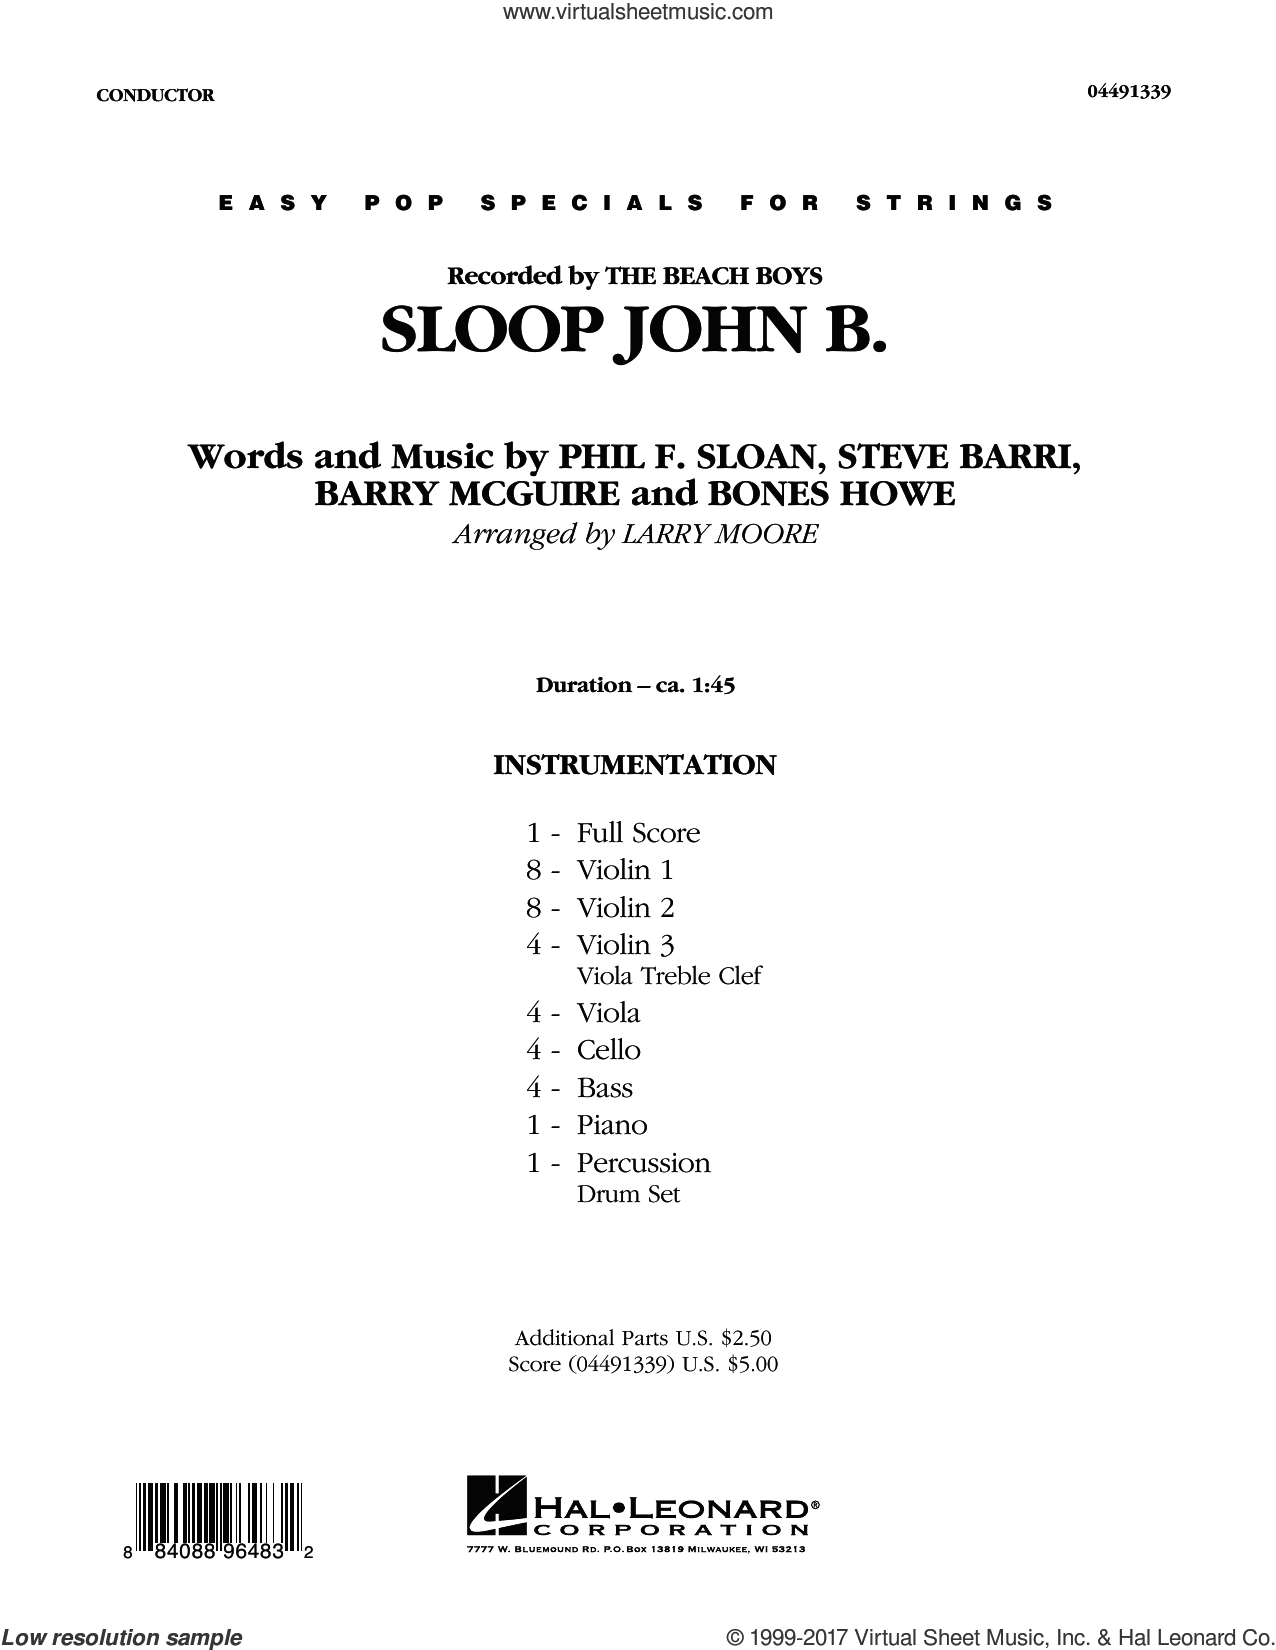 Sloop John B (COMPLETE) sheet music for orchestra by The Beach Boys, Barry McGuire, Bones Howe, Harry Belafonte, Larry Moore, Phil F. Sloan and Steve Barri, intermediate. Score Image Preview.